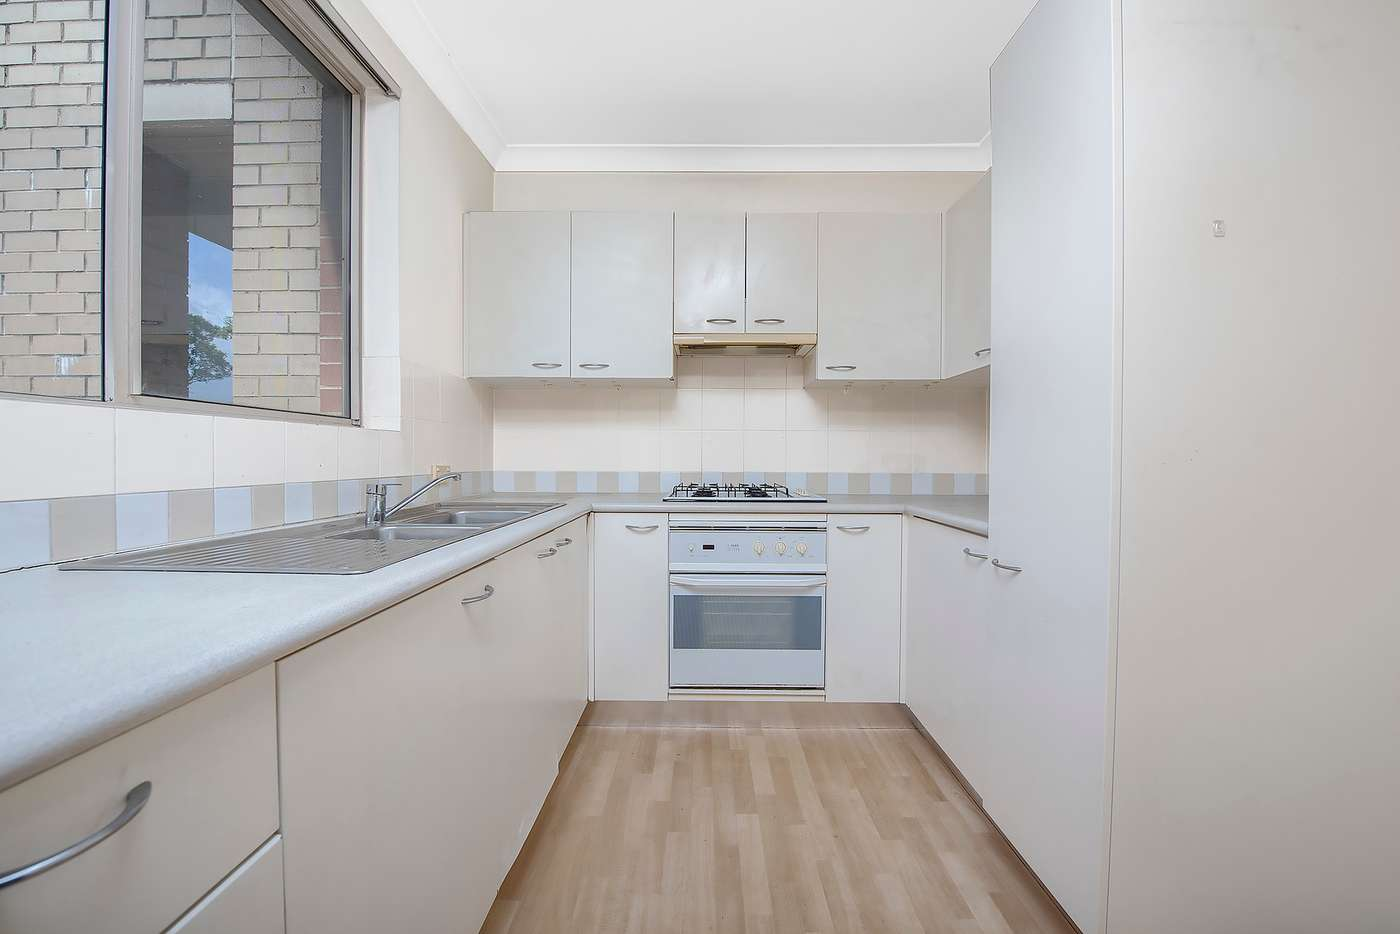 Main view of Homely apartment listing, 7I/19-21 George Street, North Strathfield NSW 2137